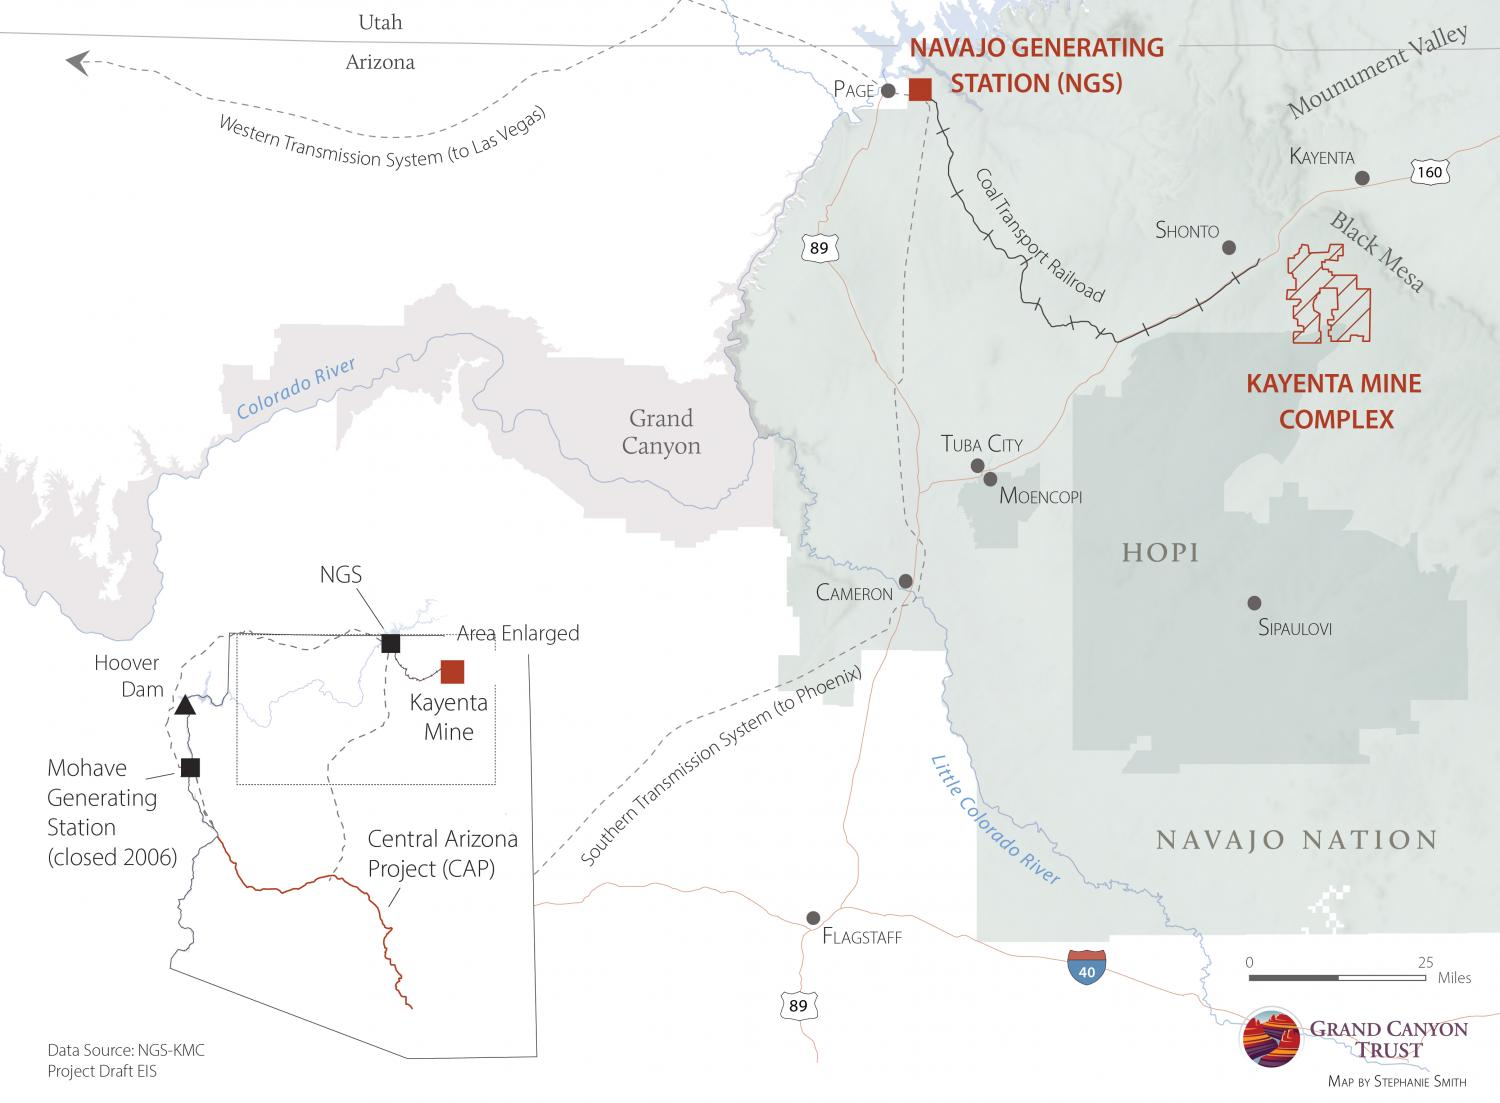 Map of NGS, Kayenta Mine Complex, and Central Arizona Project